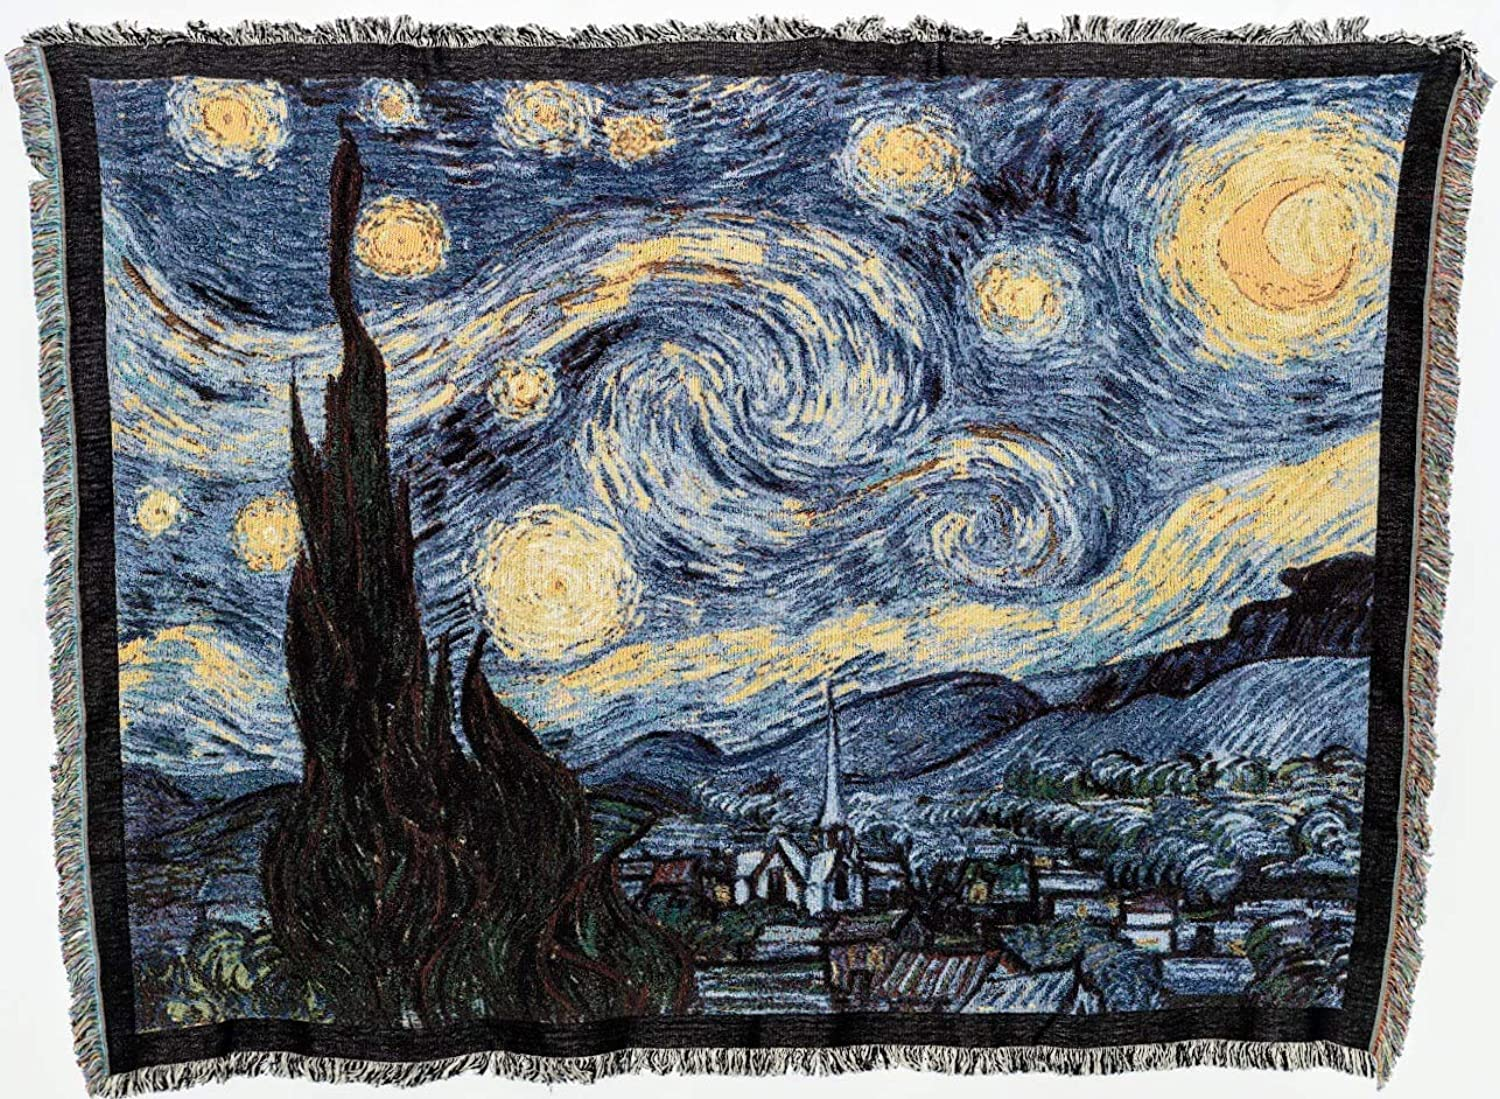 Pure Country Weavers   Starry Night Van Gogh Woven Tapestry Throw Blanket and Wall Hanging with Fringe Cotton USA 72x54